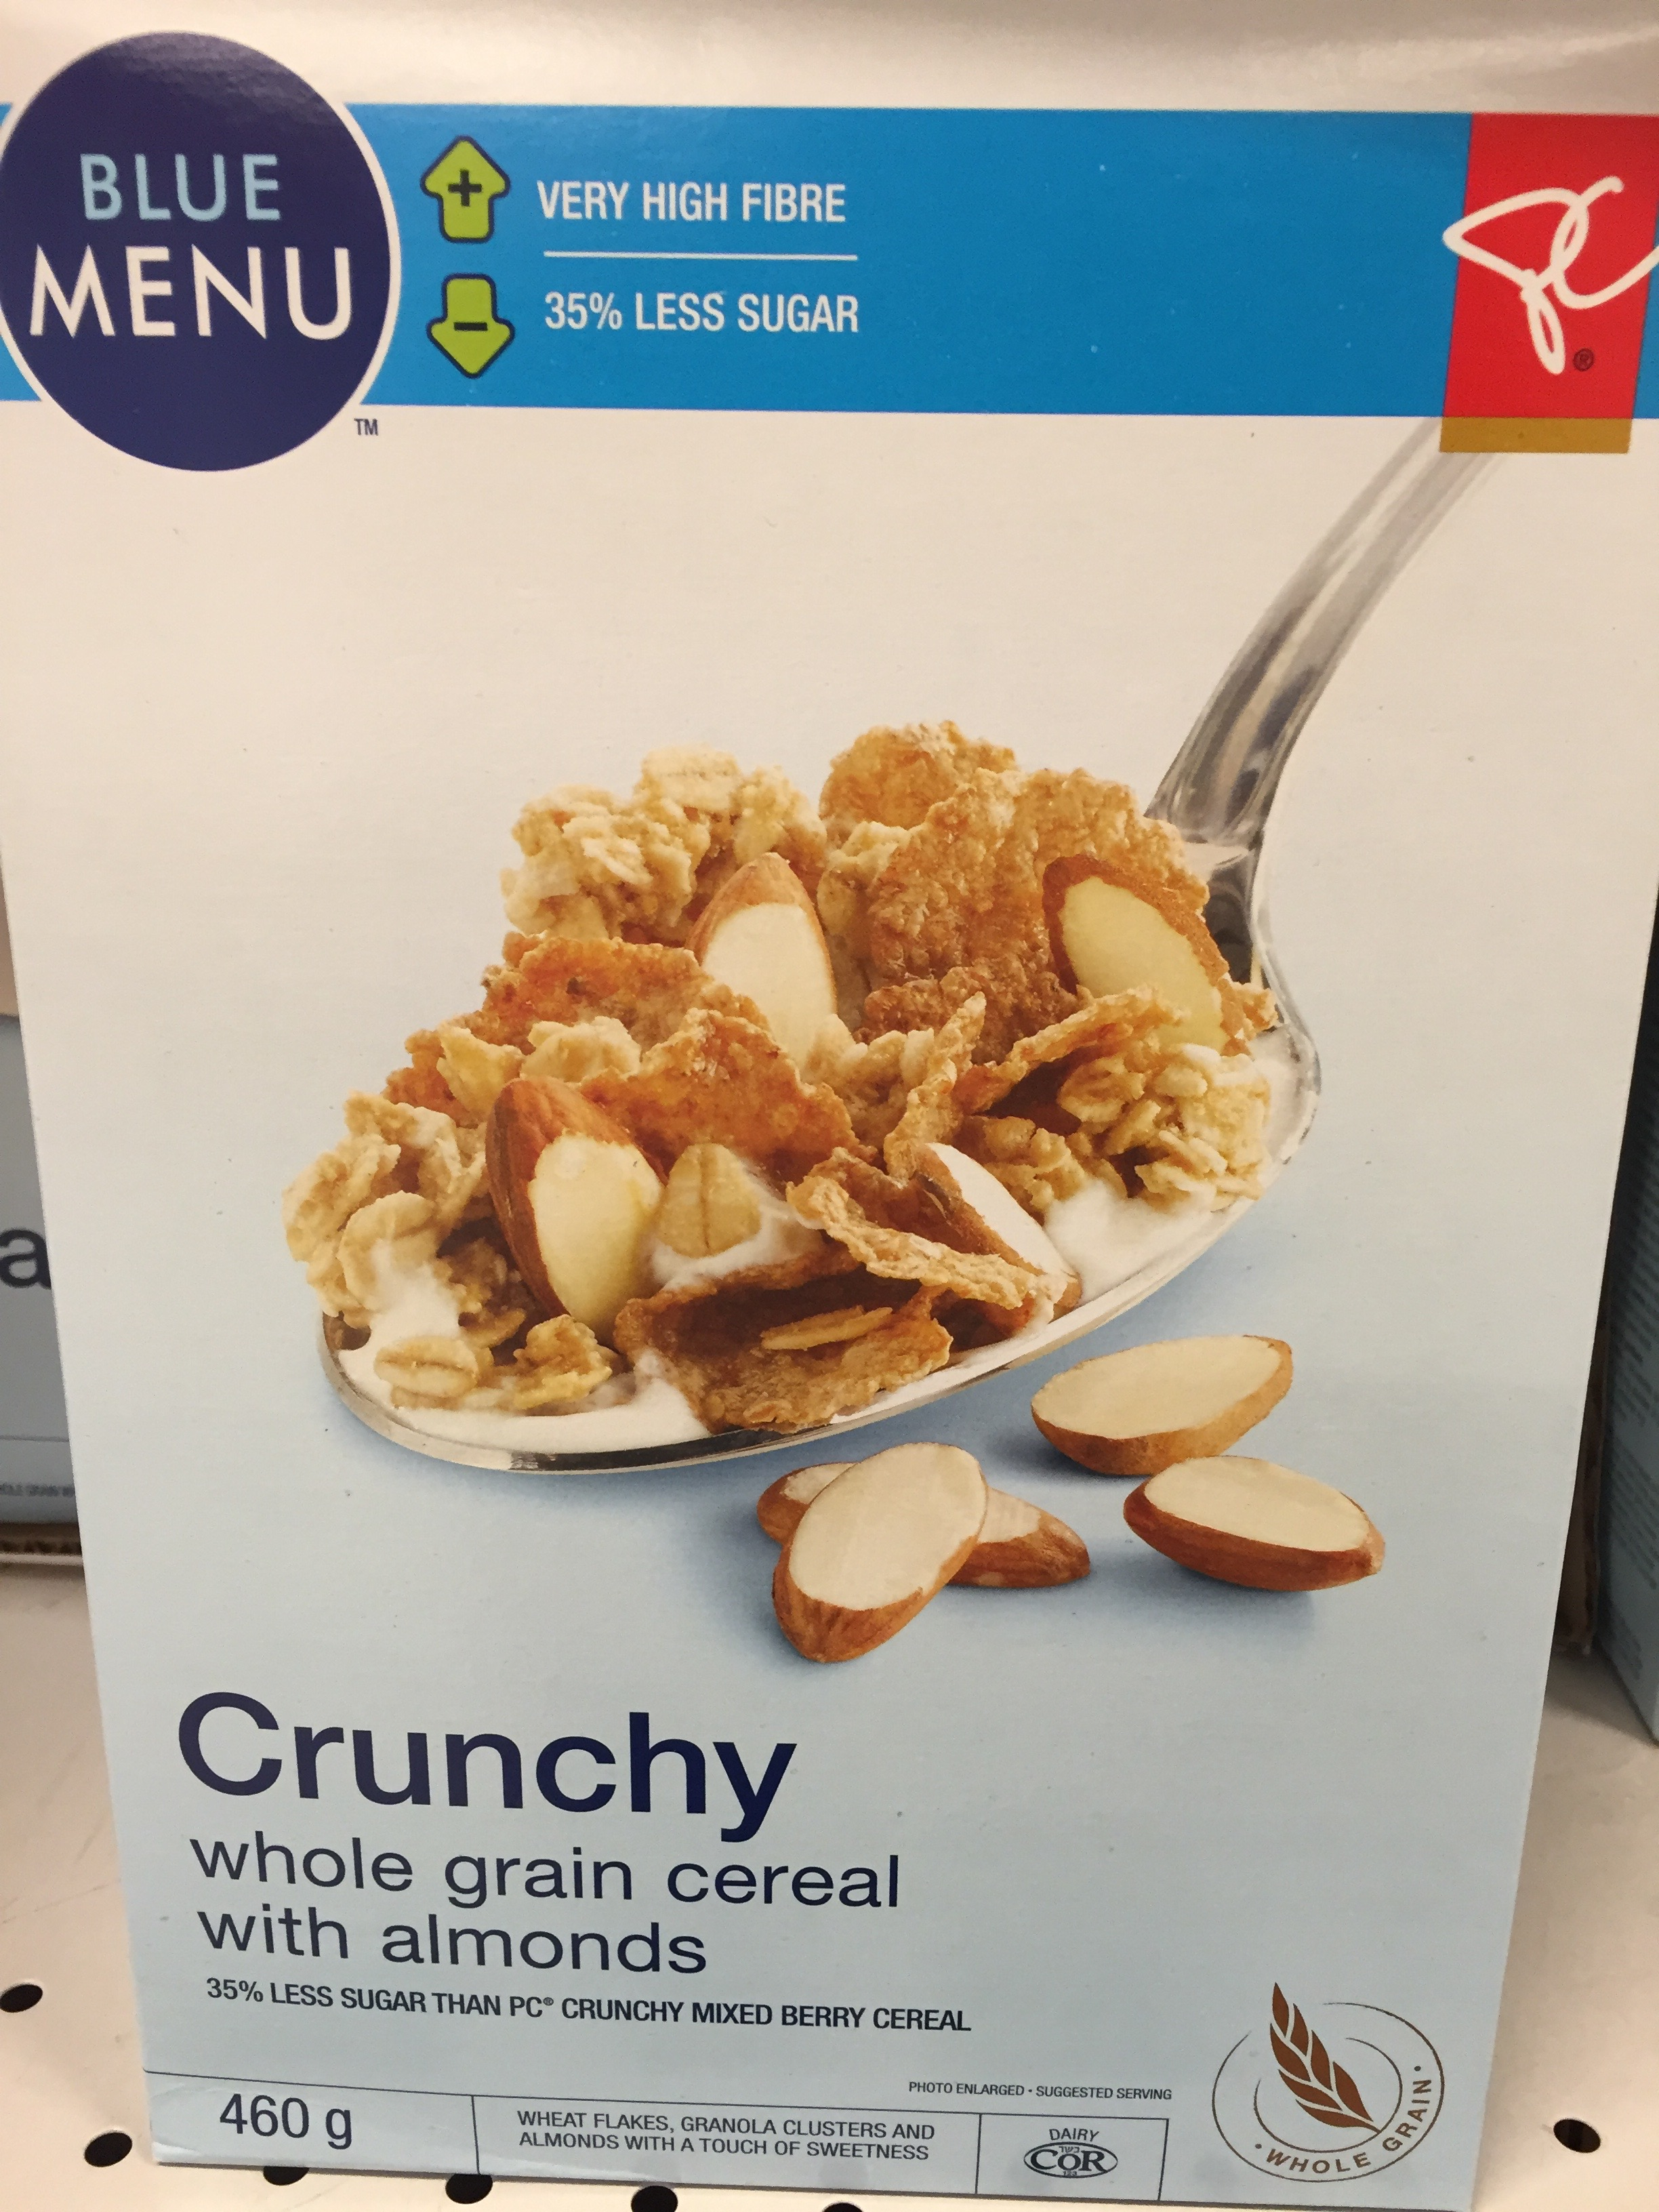 Healthy cereal: Blue Menu Crunchy Whole Grain Cereal with Almonds